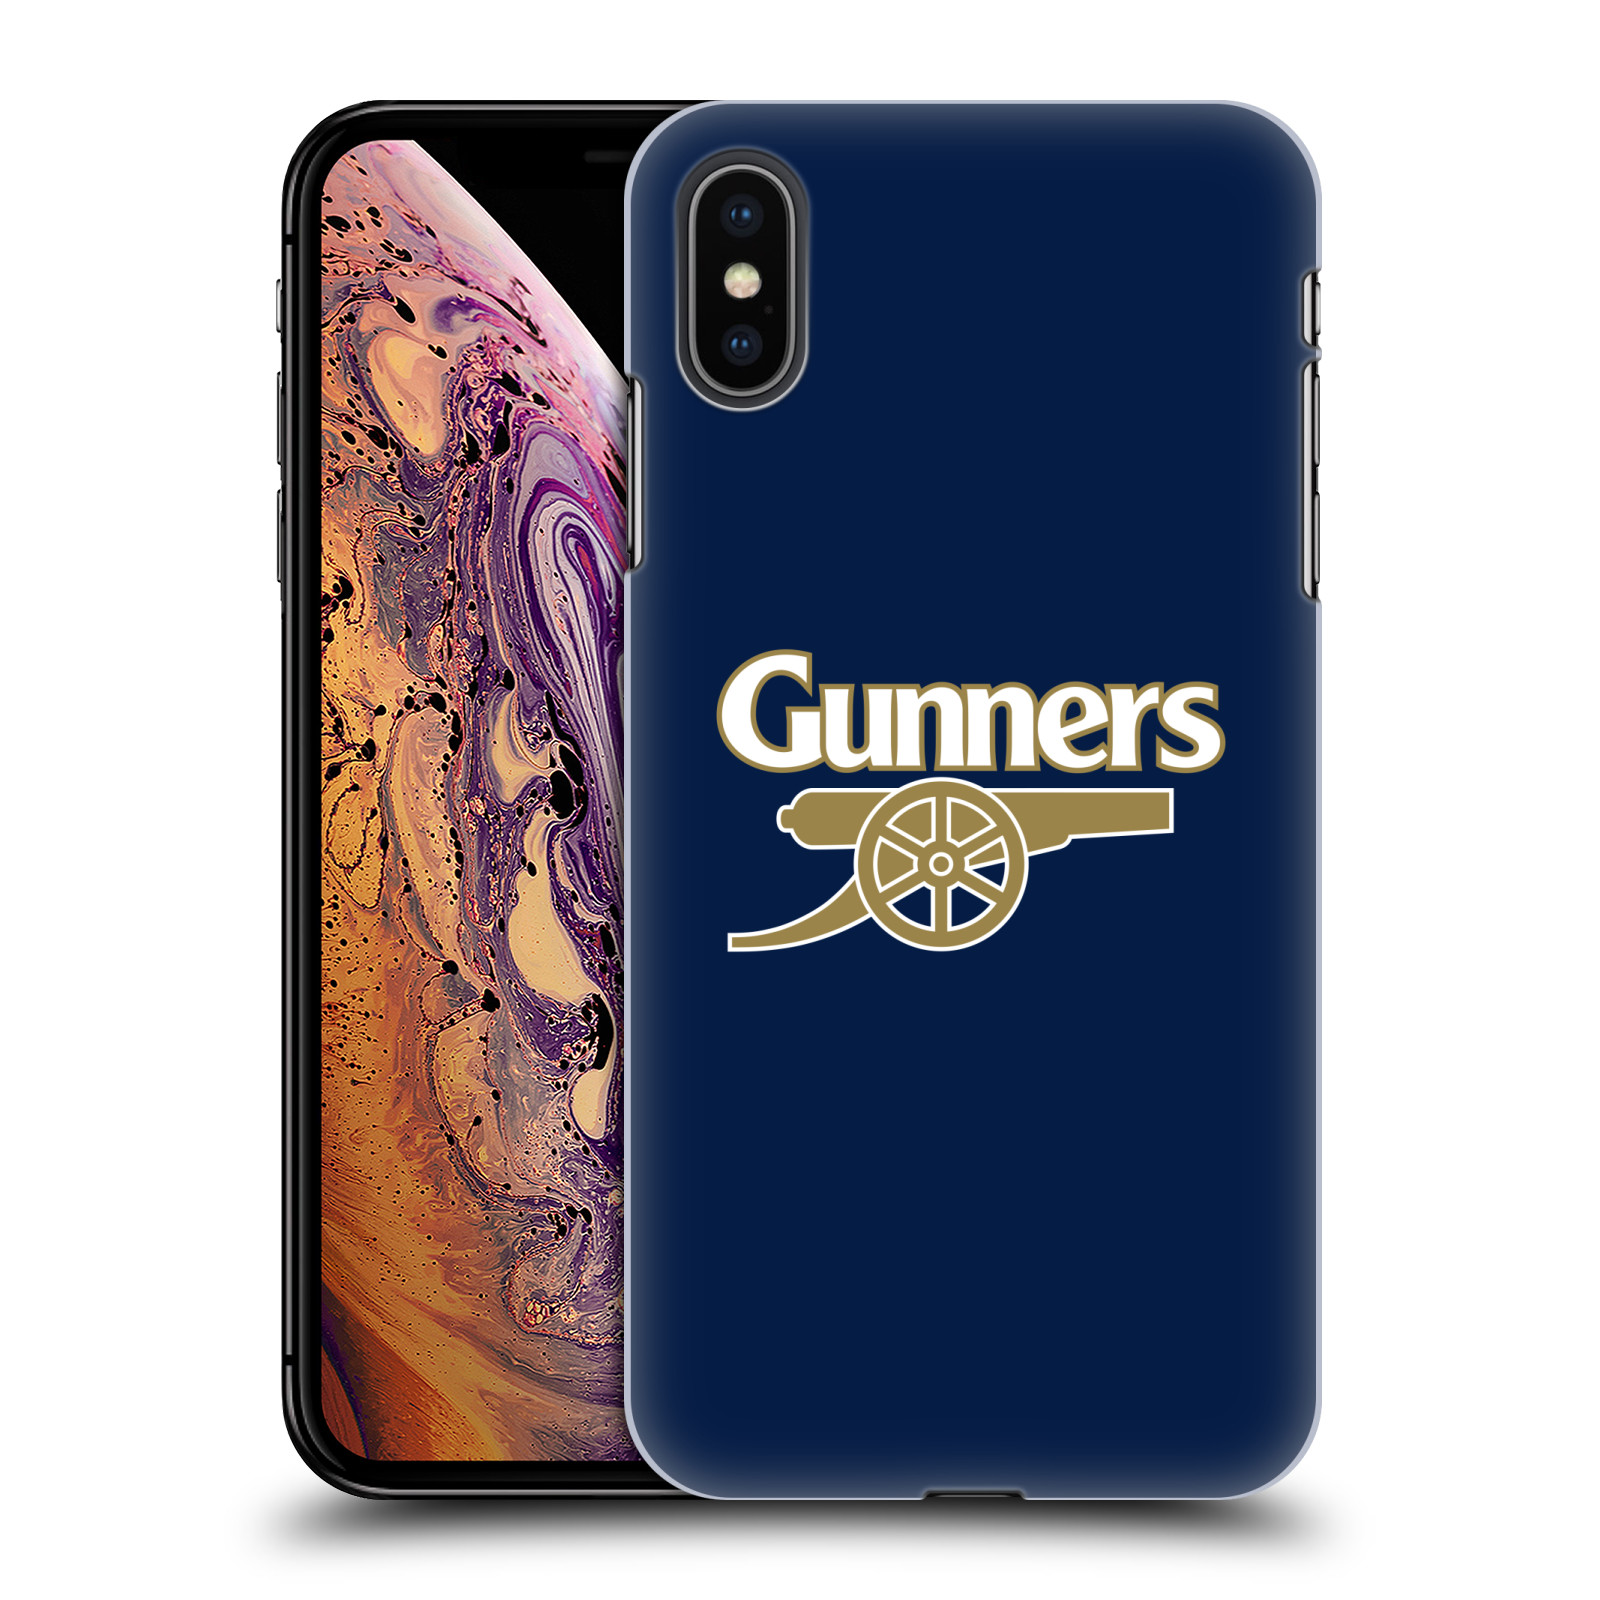 Plastové pouzdro na mobil Apple iPhone XS Max - Head Case - Arsenal FC - Gunners